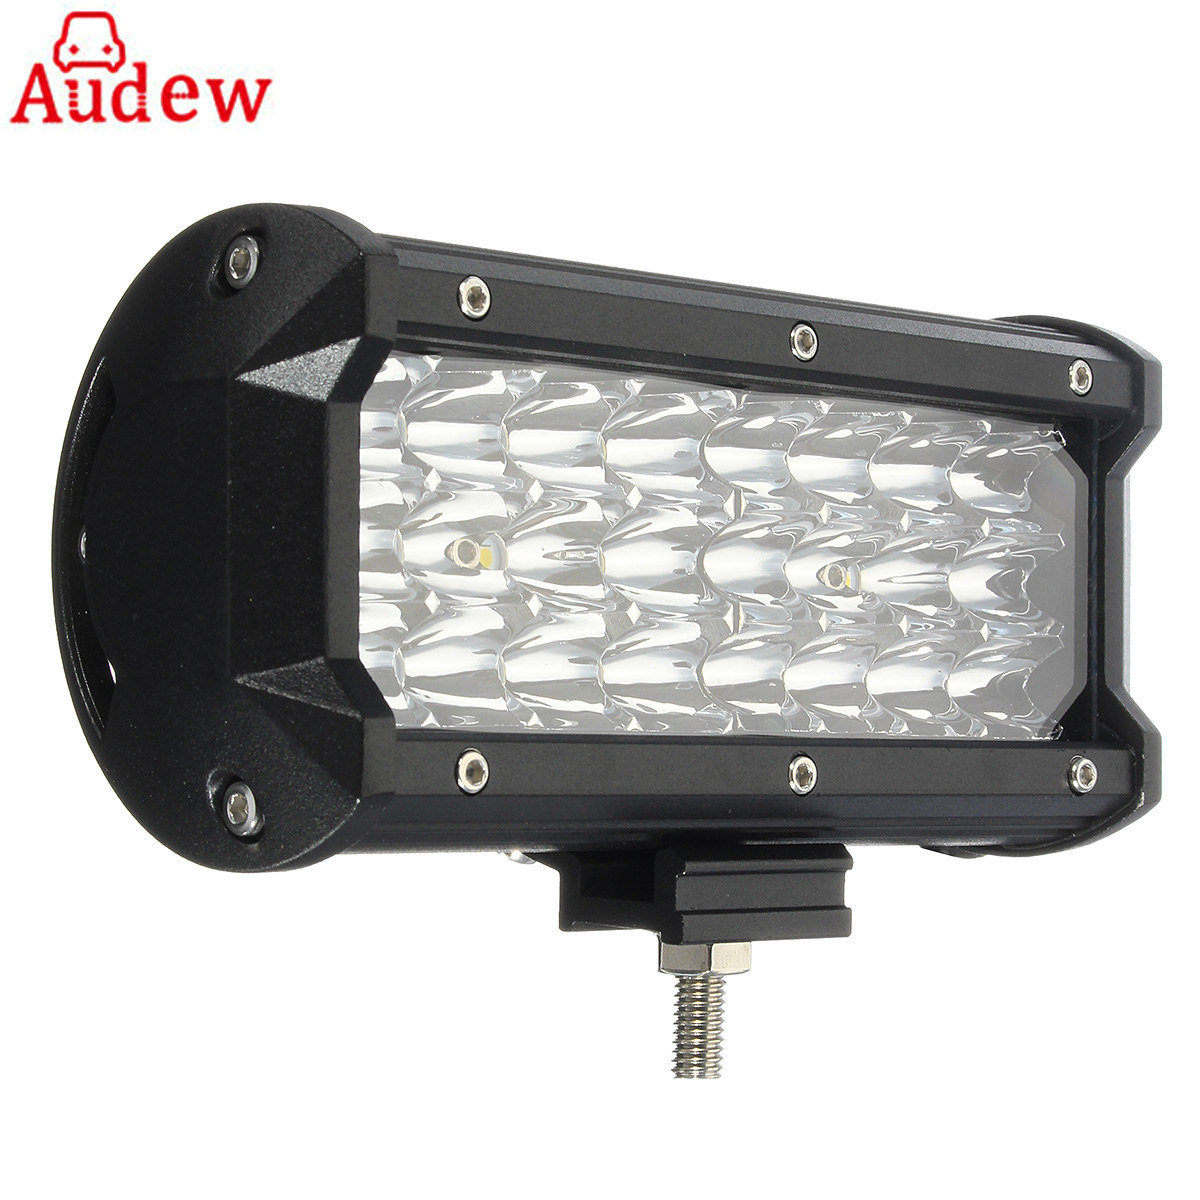 12Inch 72W Car light Led Lamp Spotlight Work Lihgt for off-road vehicles, trucks, motorcycles, automobiles